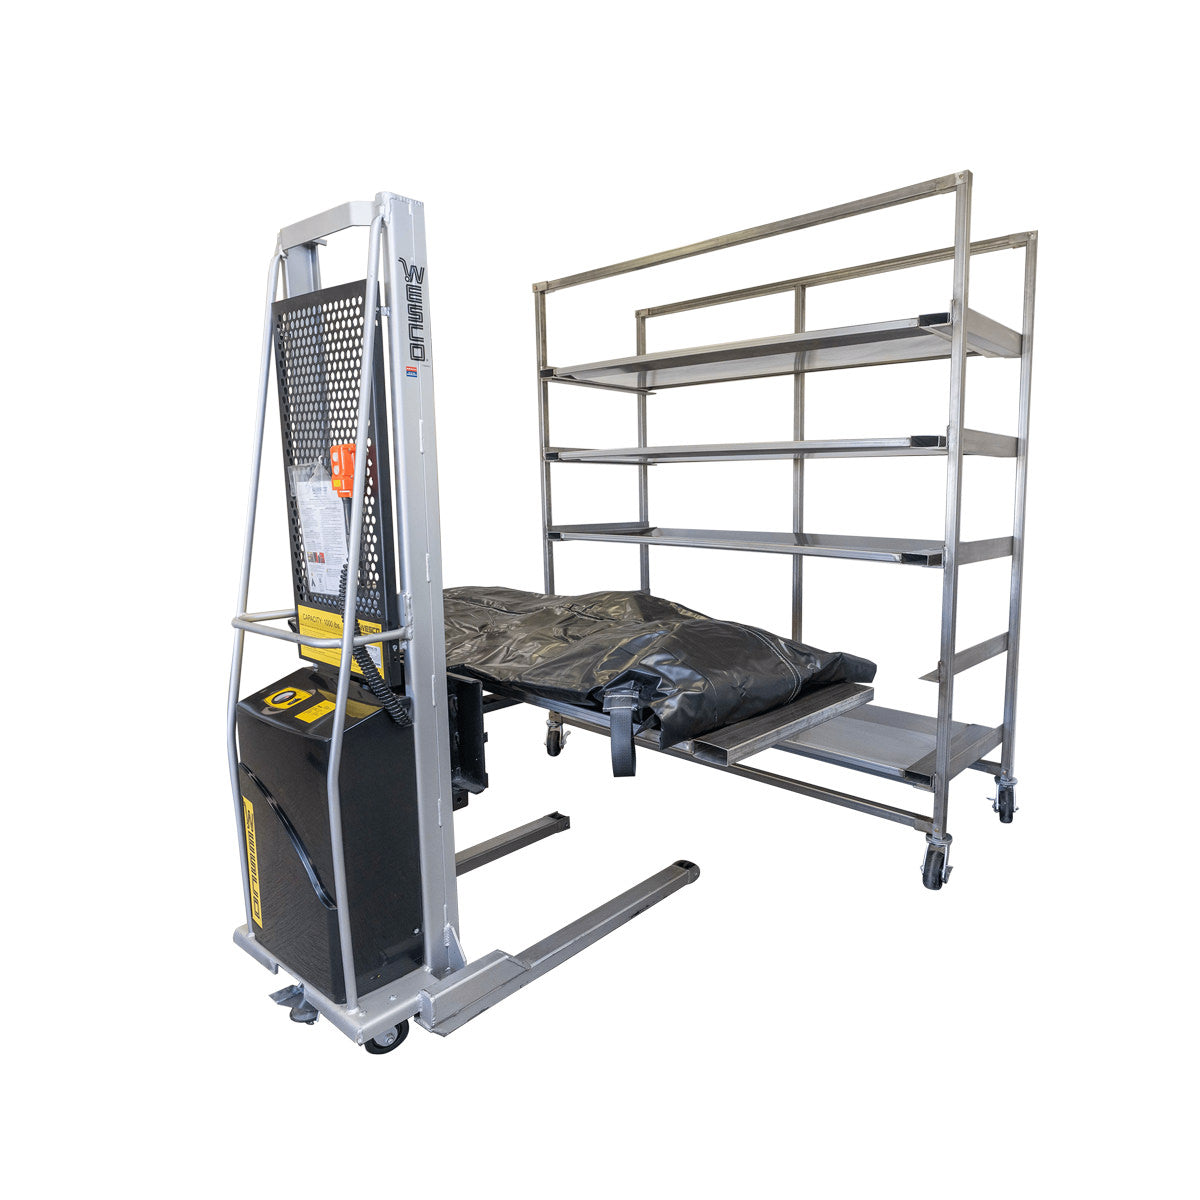 Ready Response Rack Quick Deploy Morgue Rack & Body Tray System